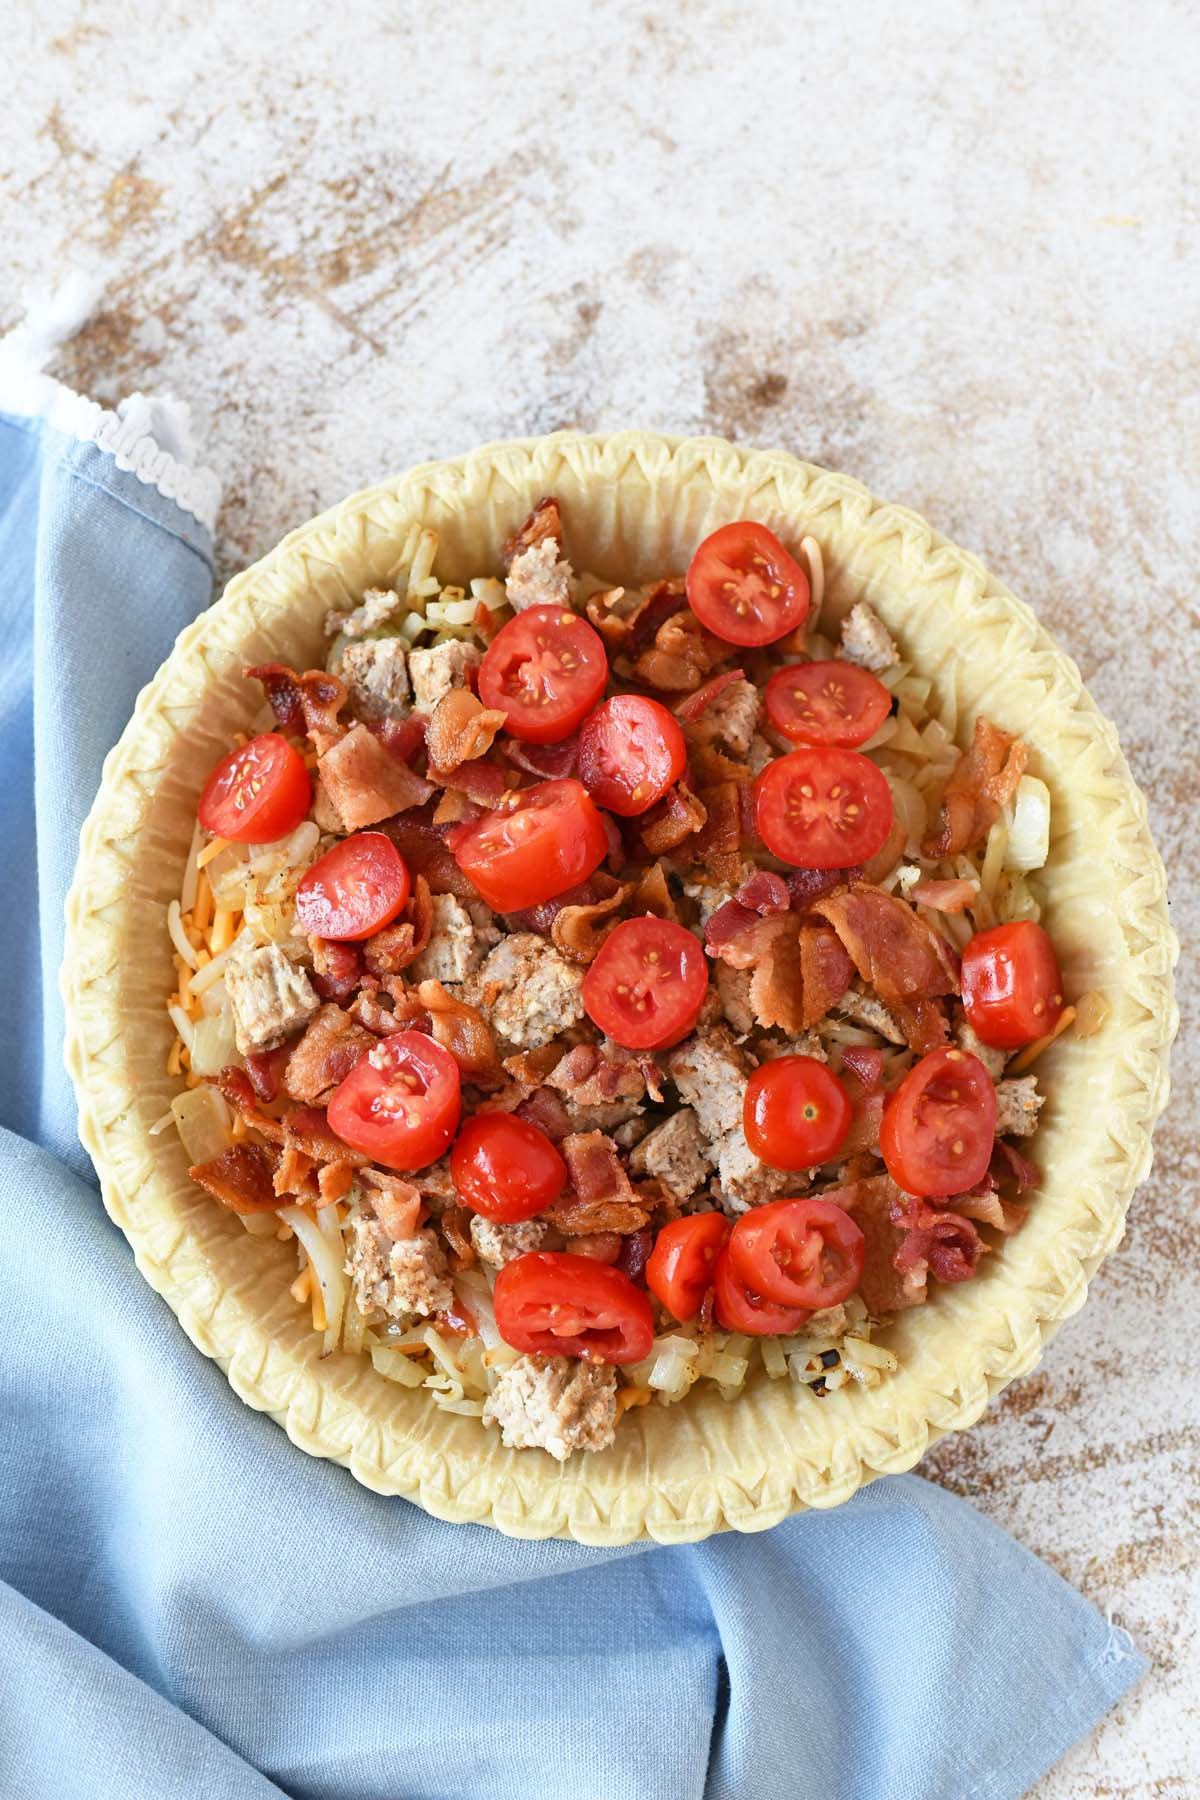 Crisp bacon, sausage, and tomato in a pie shell.